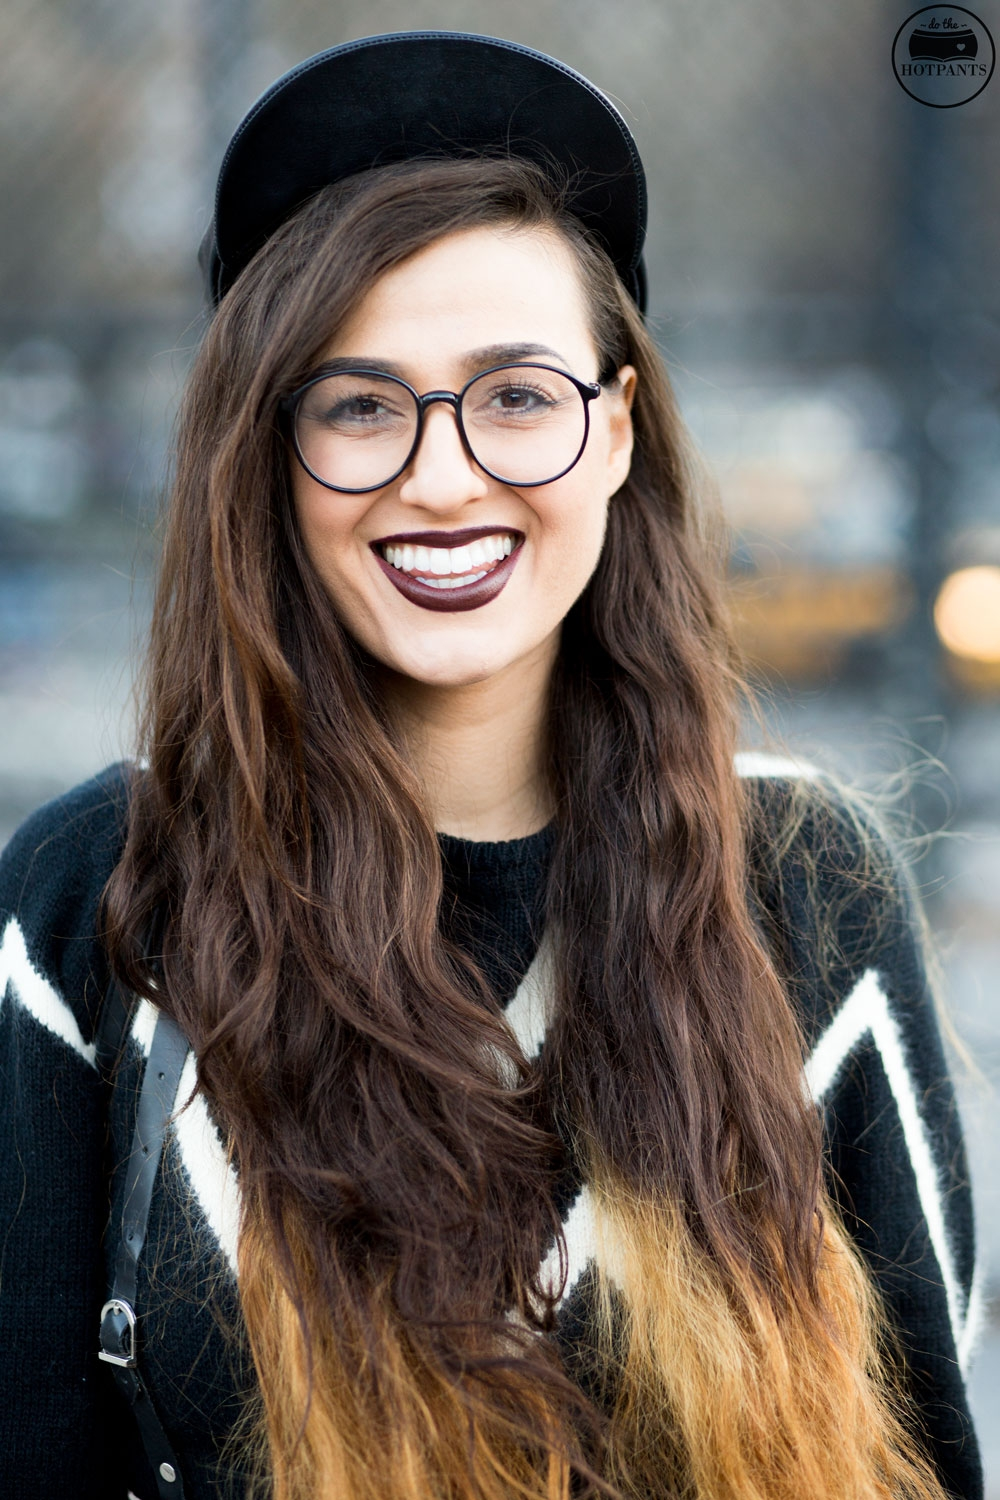 Long Hair Blogger Curvy Woman Ombre Hair New York Winter Goth Fashion